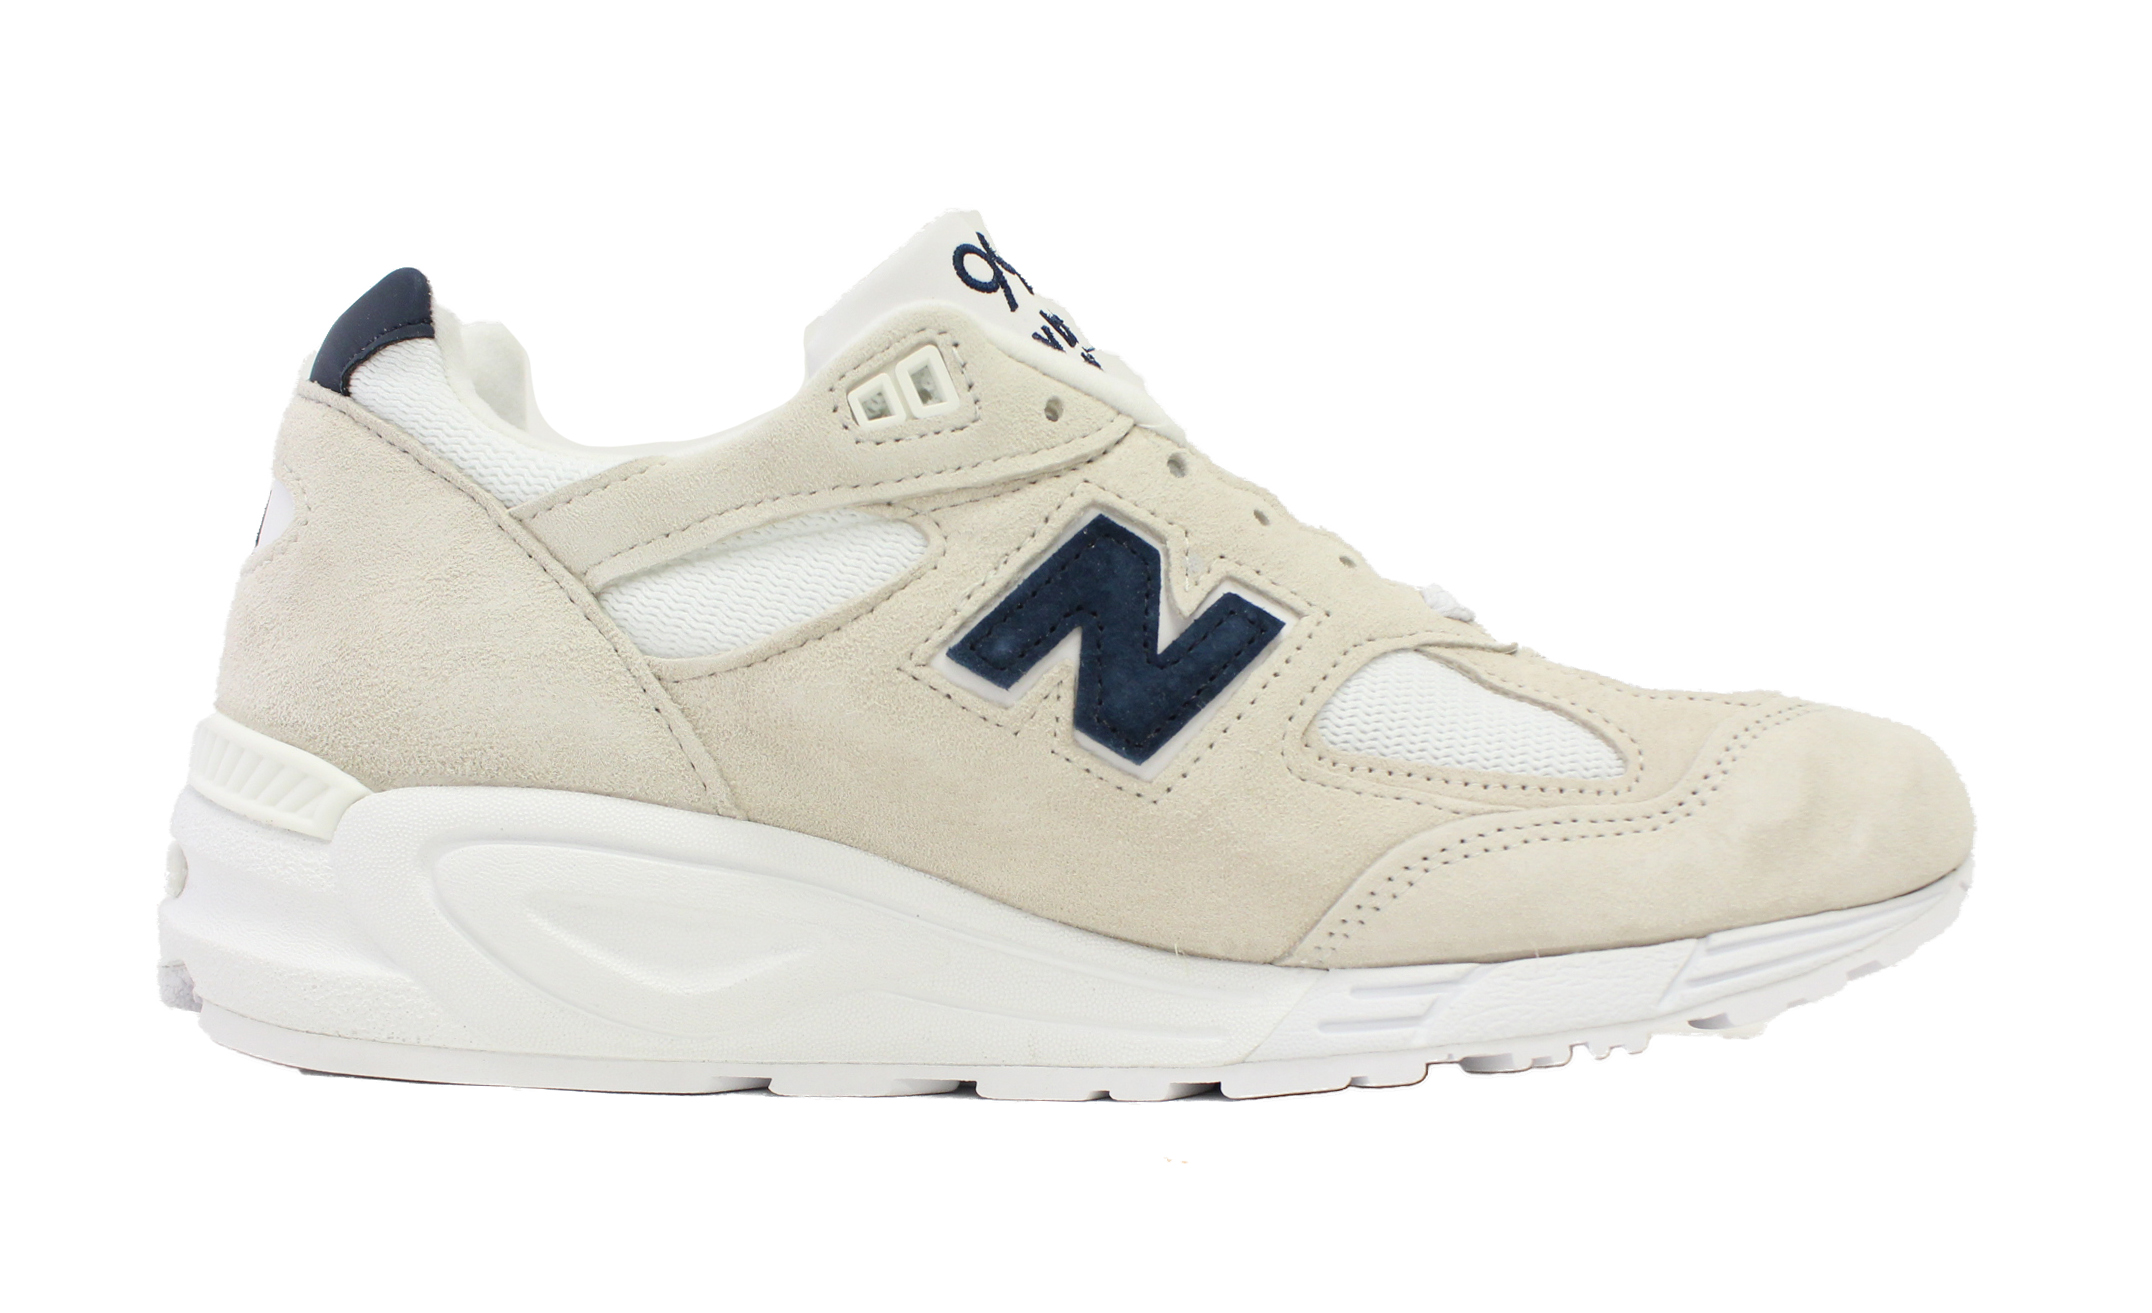 NEW BALANCE 990 MADE IN USA OFF WHITE